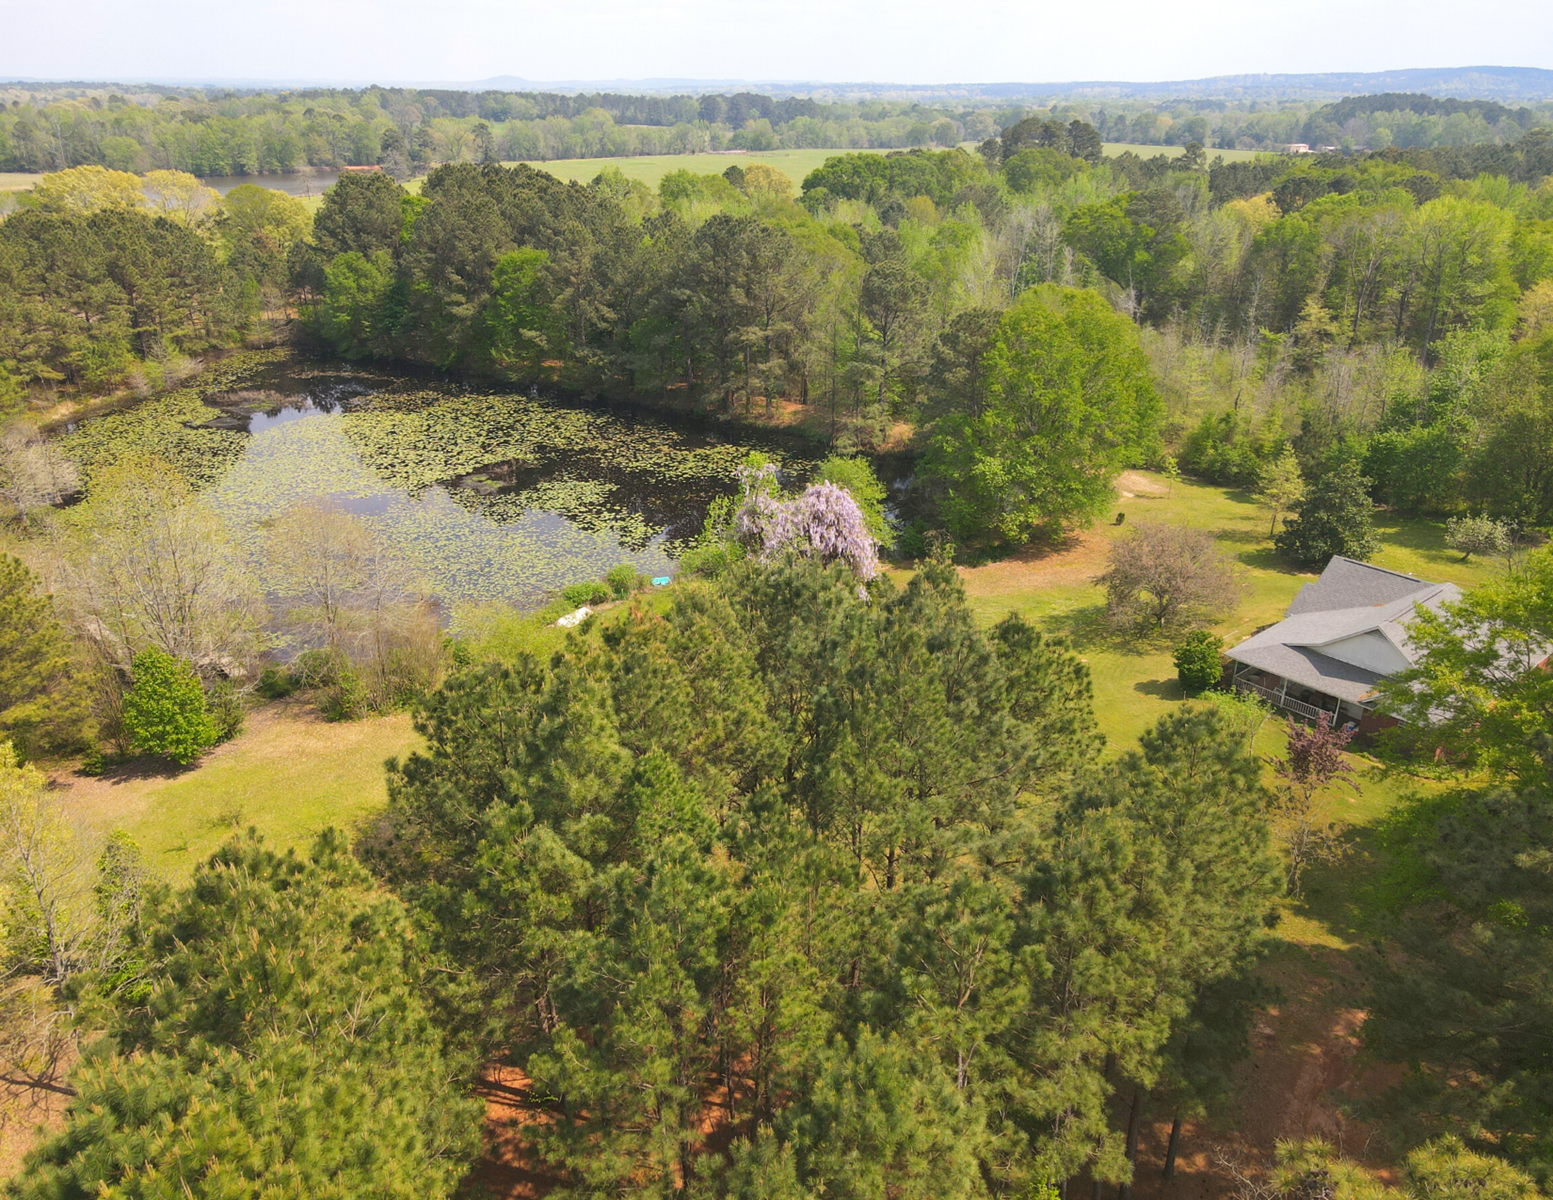 Country Home with acreage for sale Cass County, TX